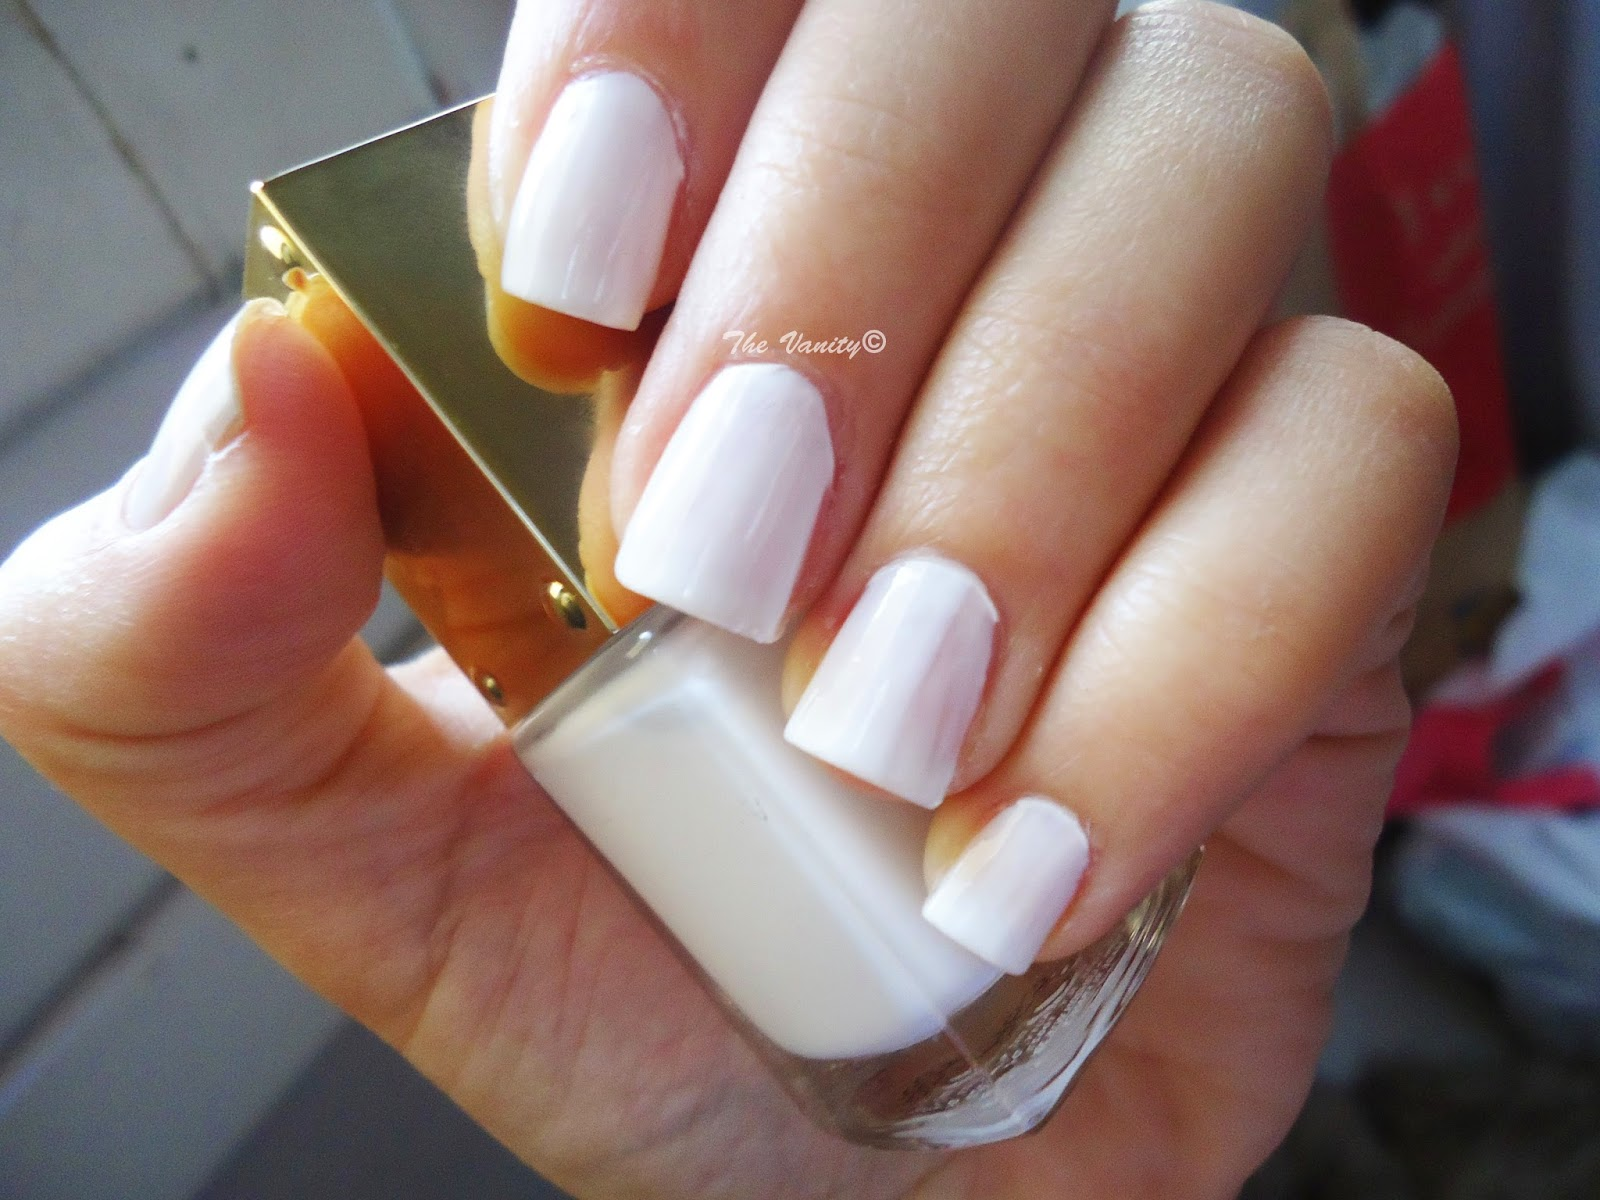 Michael Kors Nail Lacquer In Gossip Review